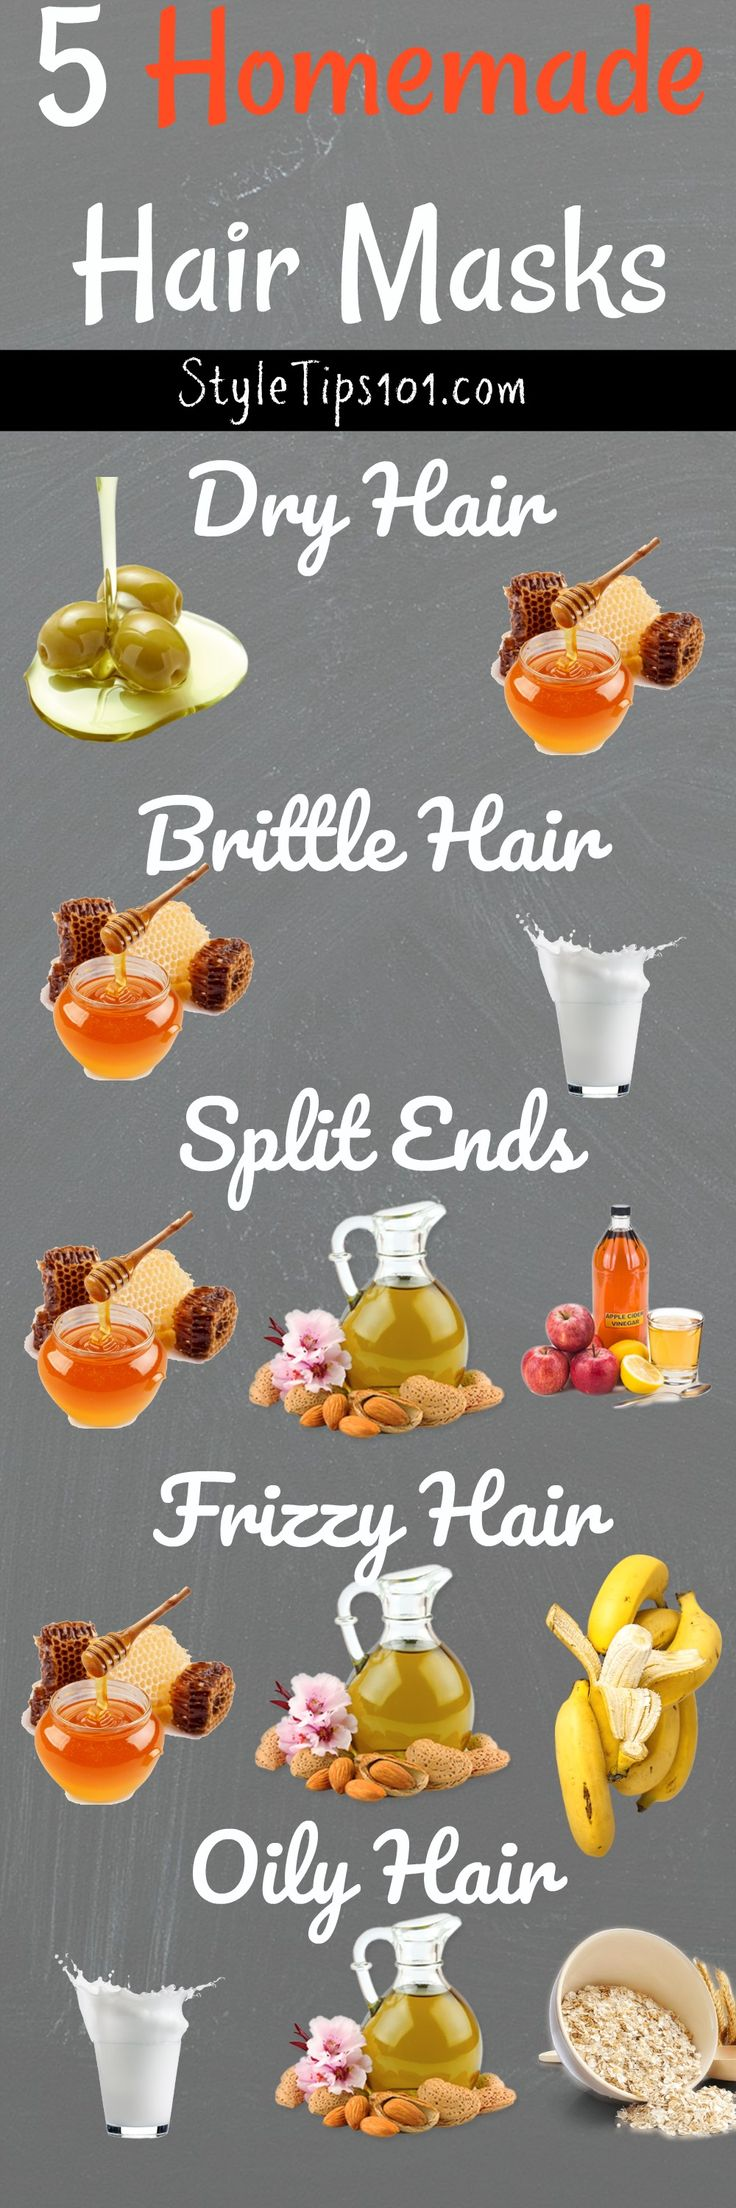 5 Do-it-yourself Hair Masks for All Hair Varieties